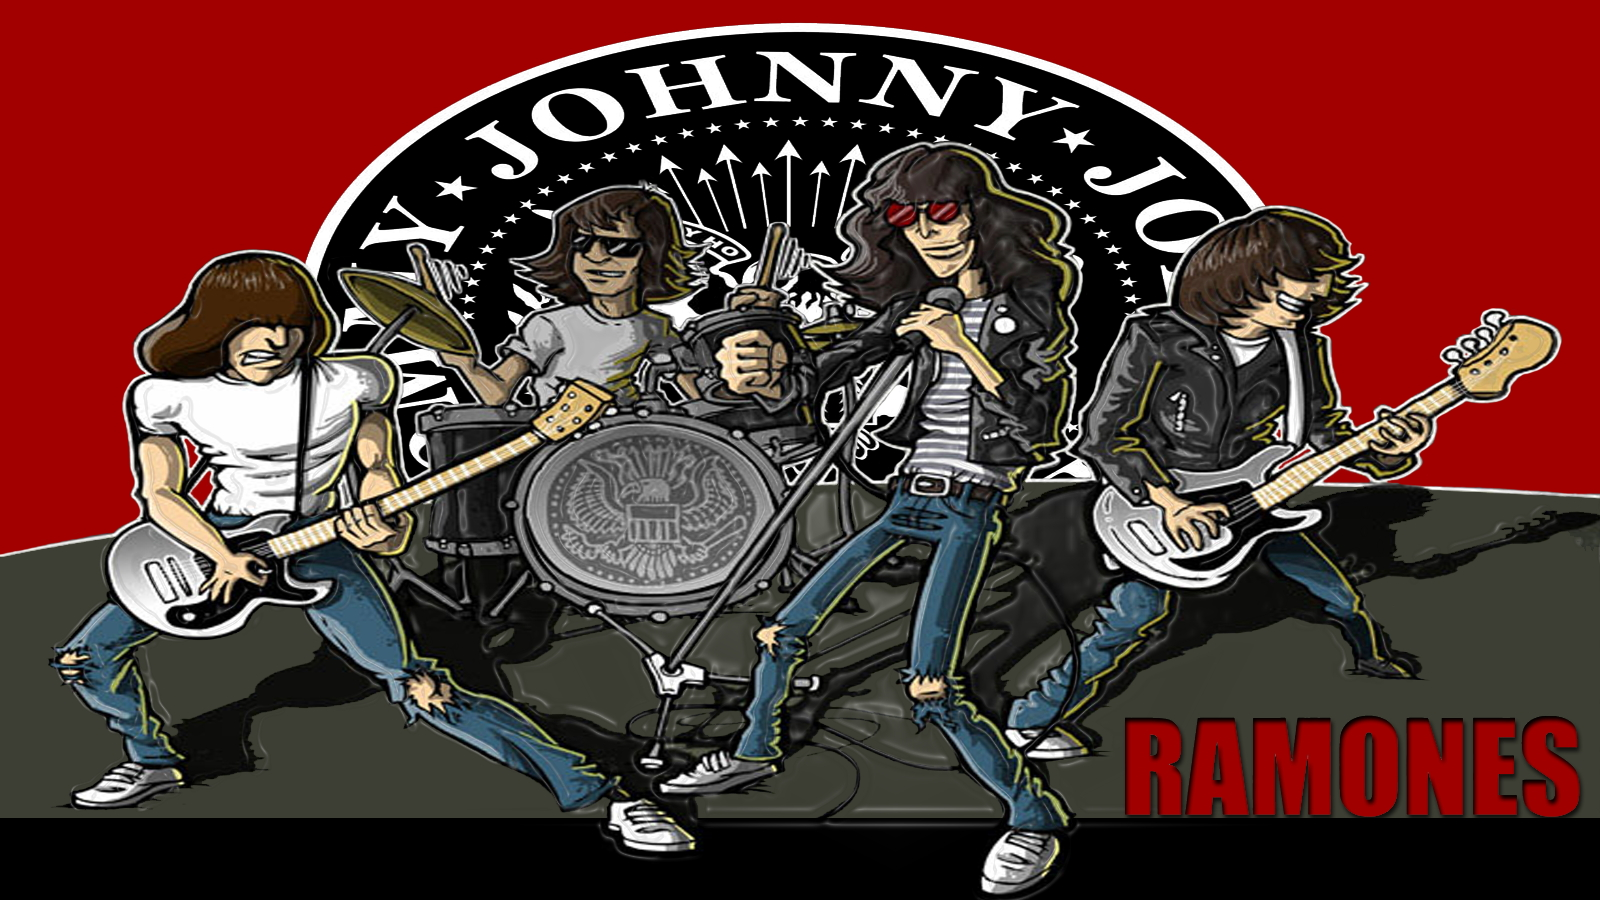 The Ramones Wallpaper WallpaperSafari